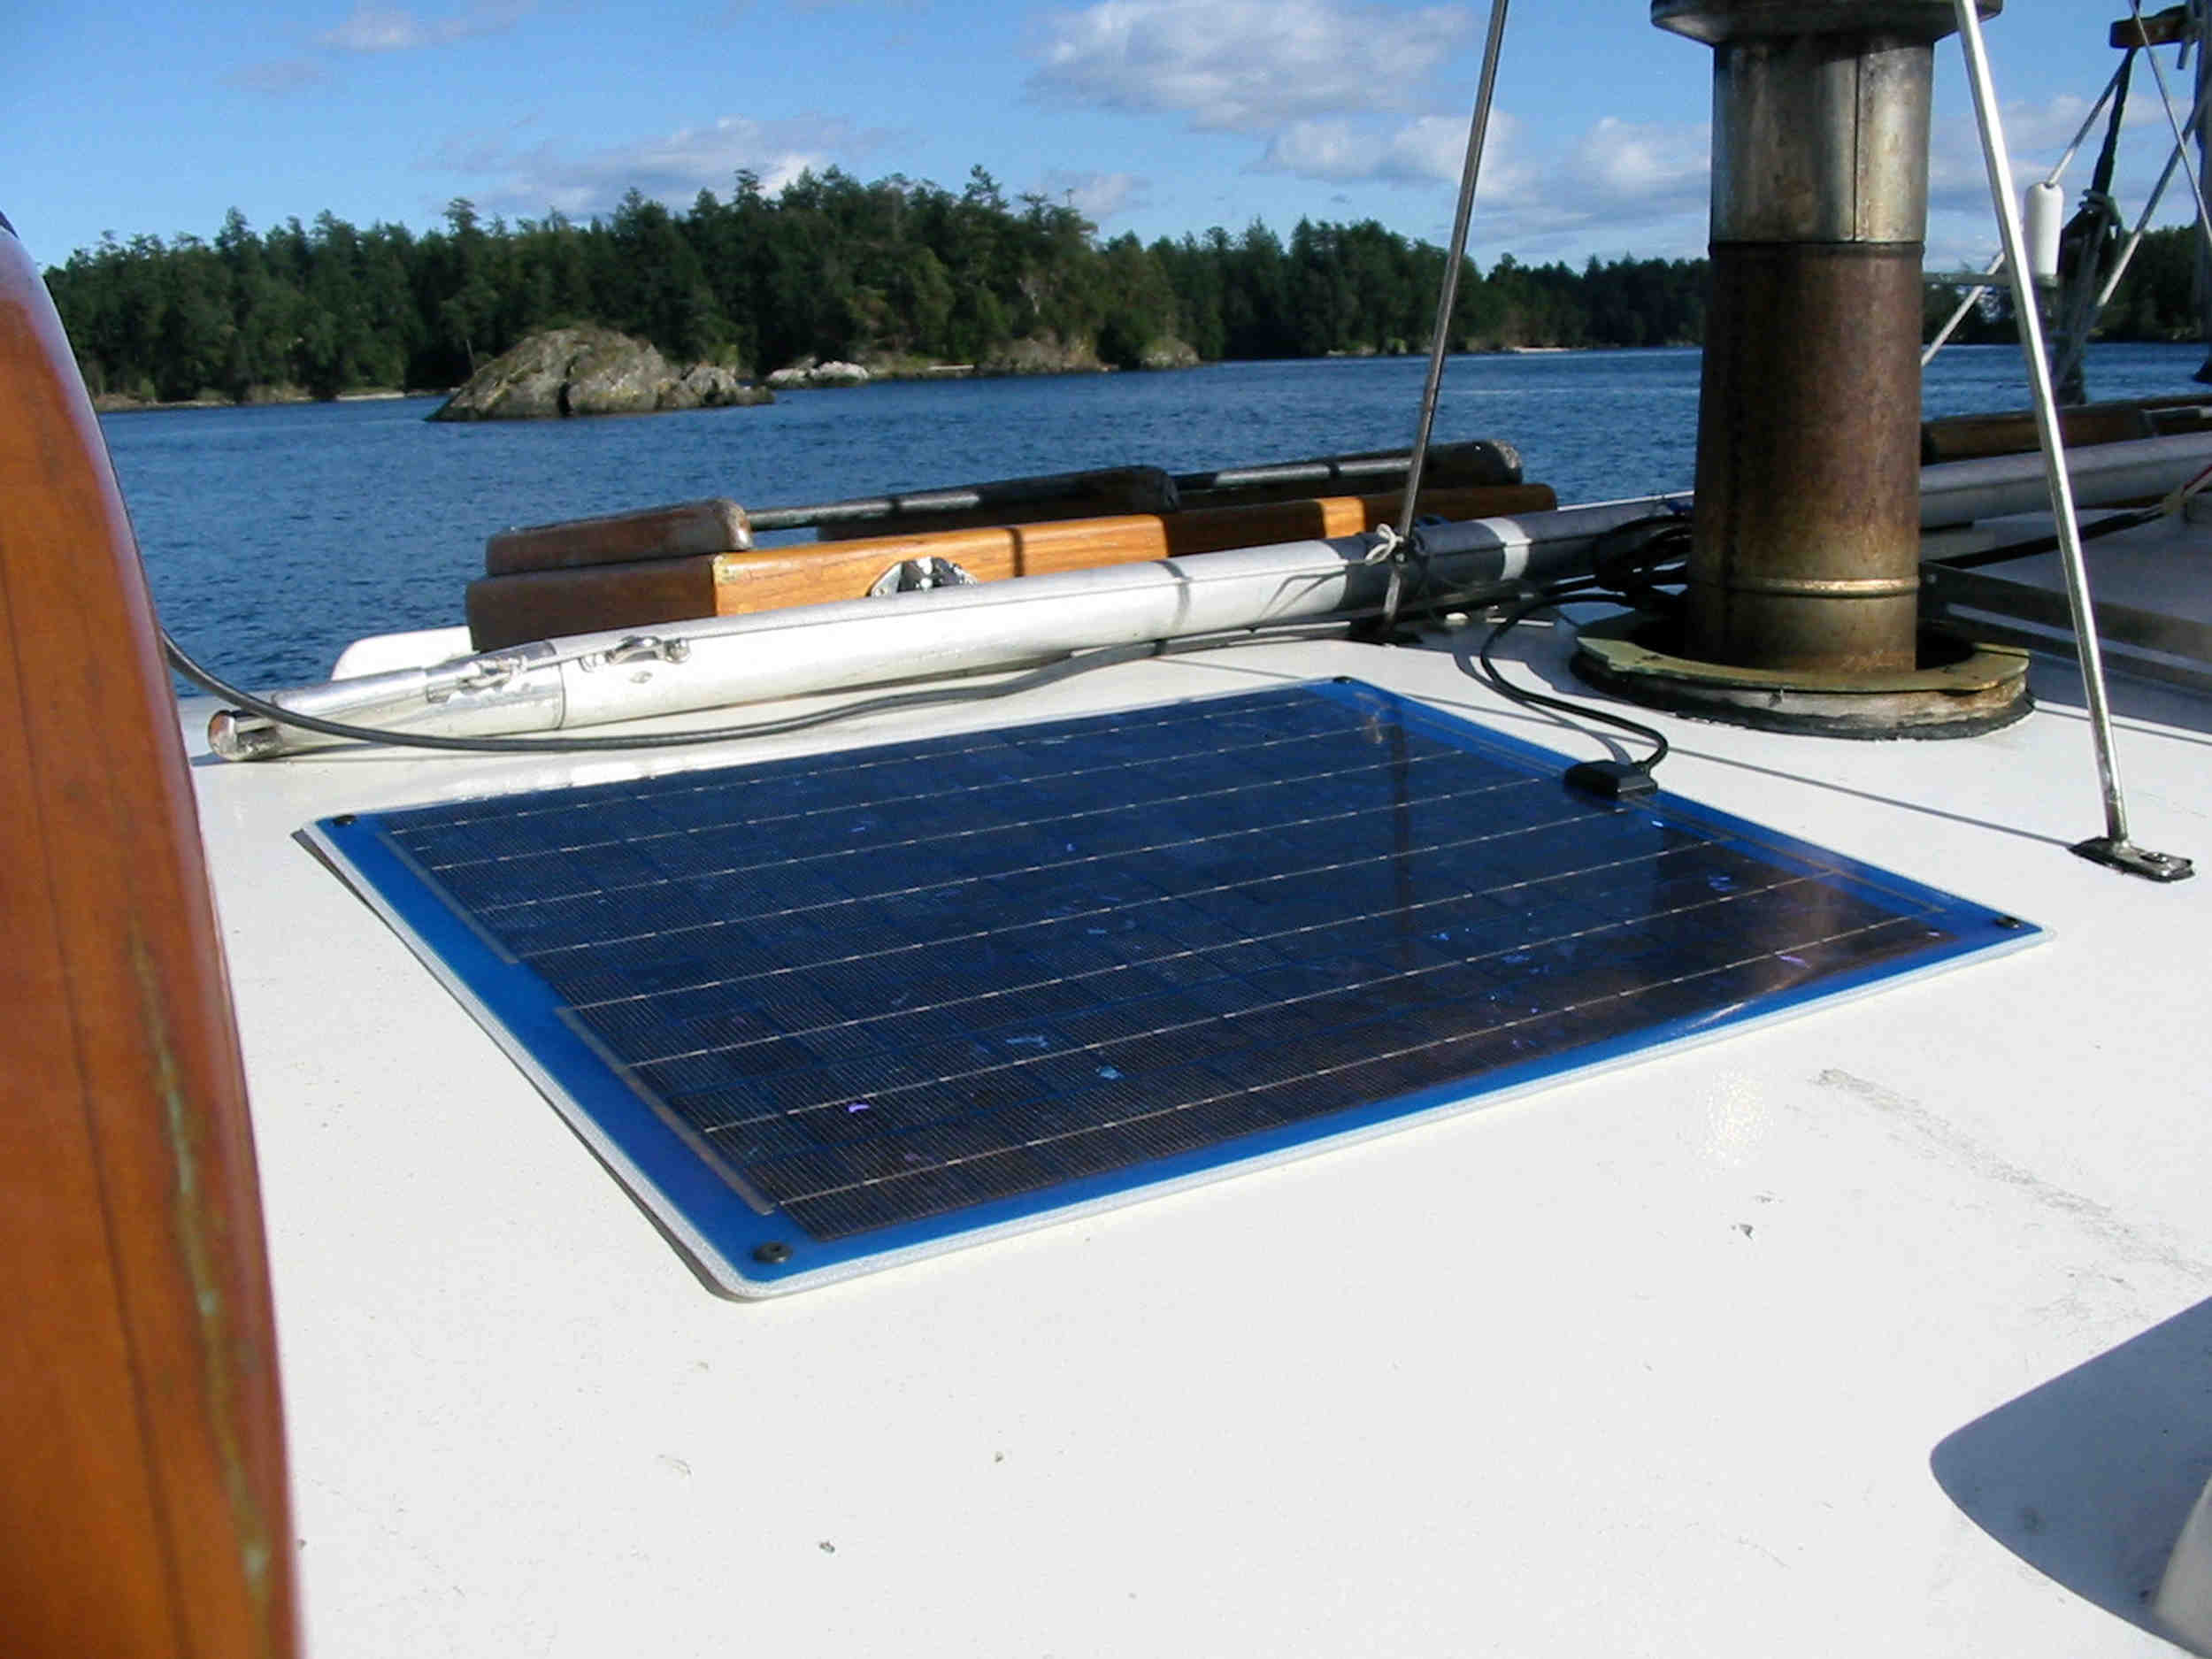 Are marine batteries good for solar?